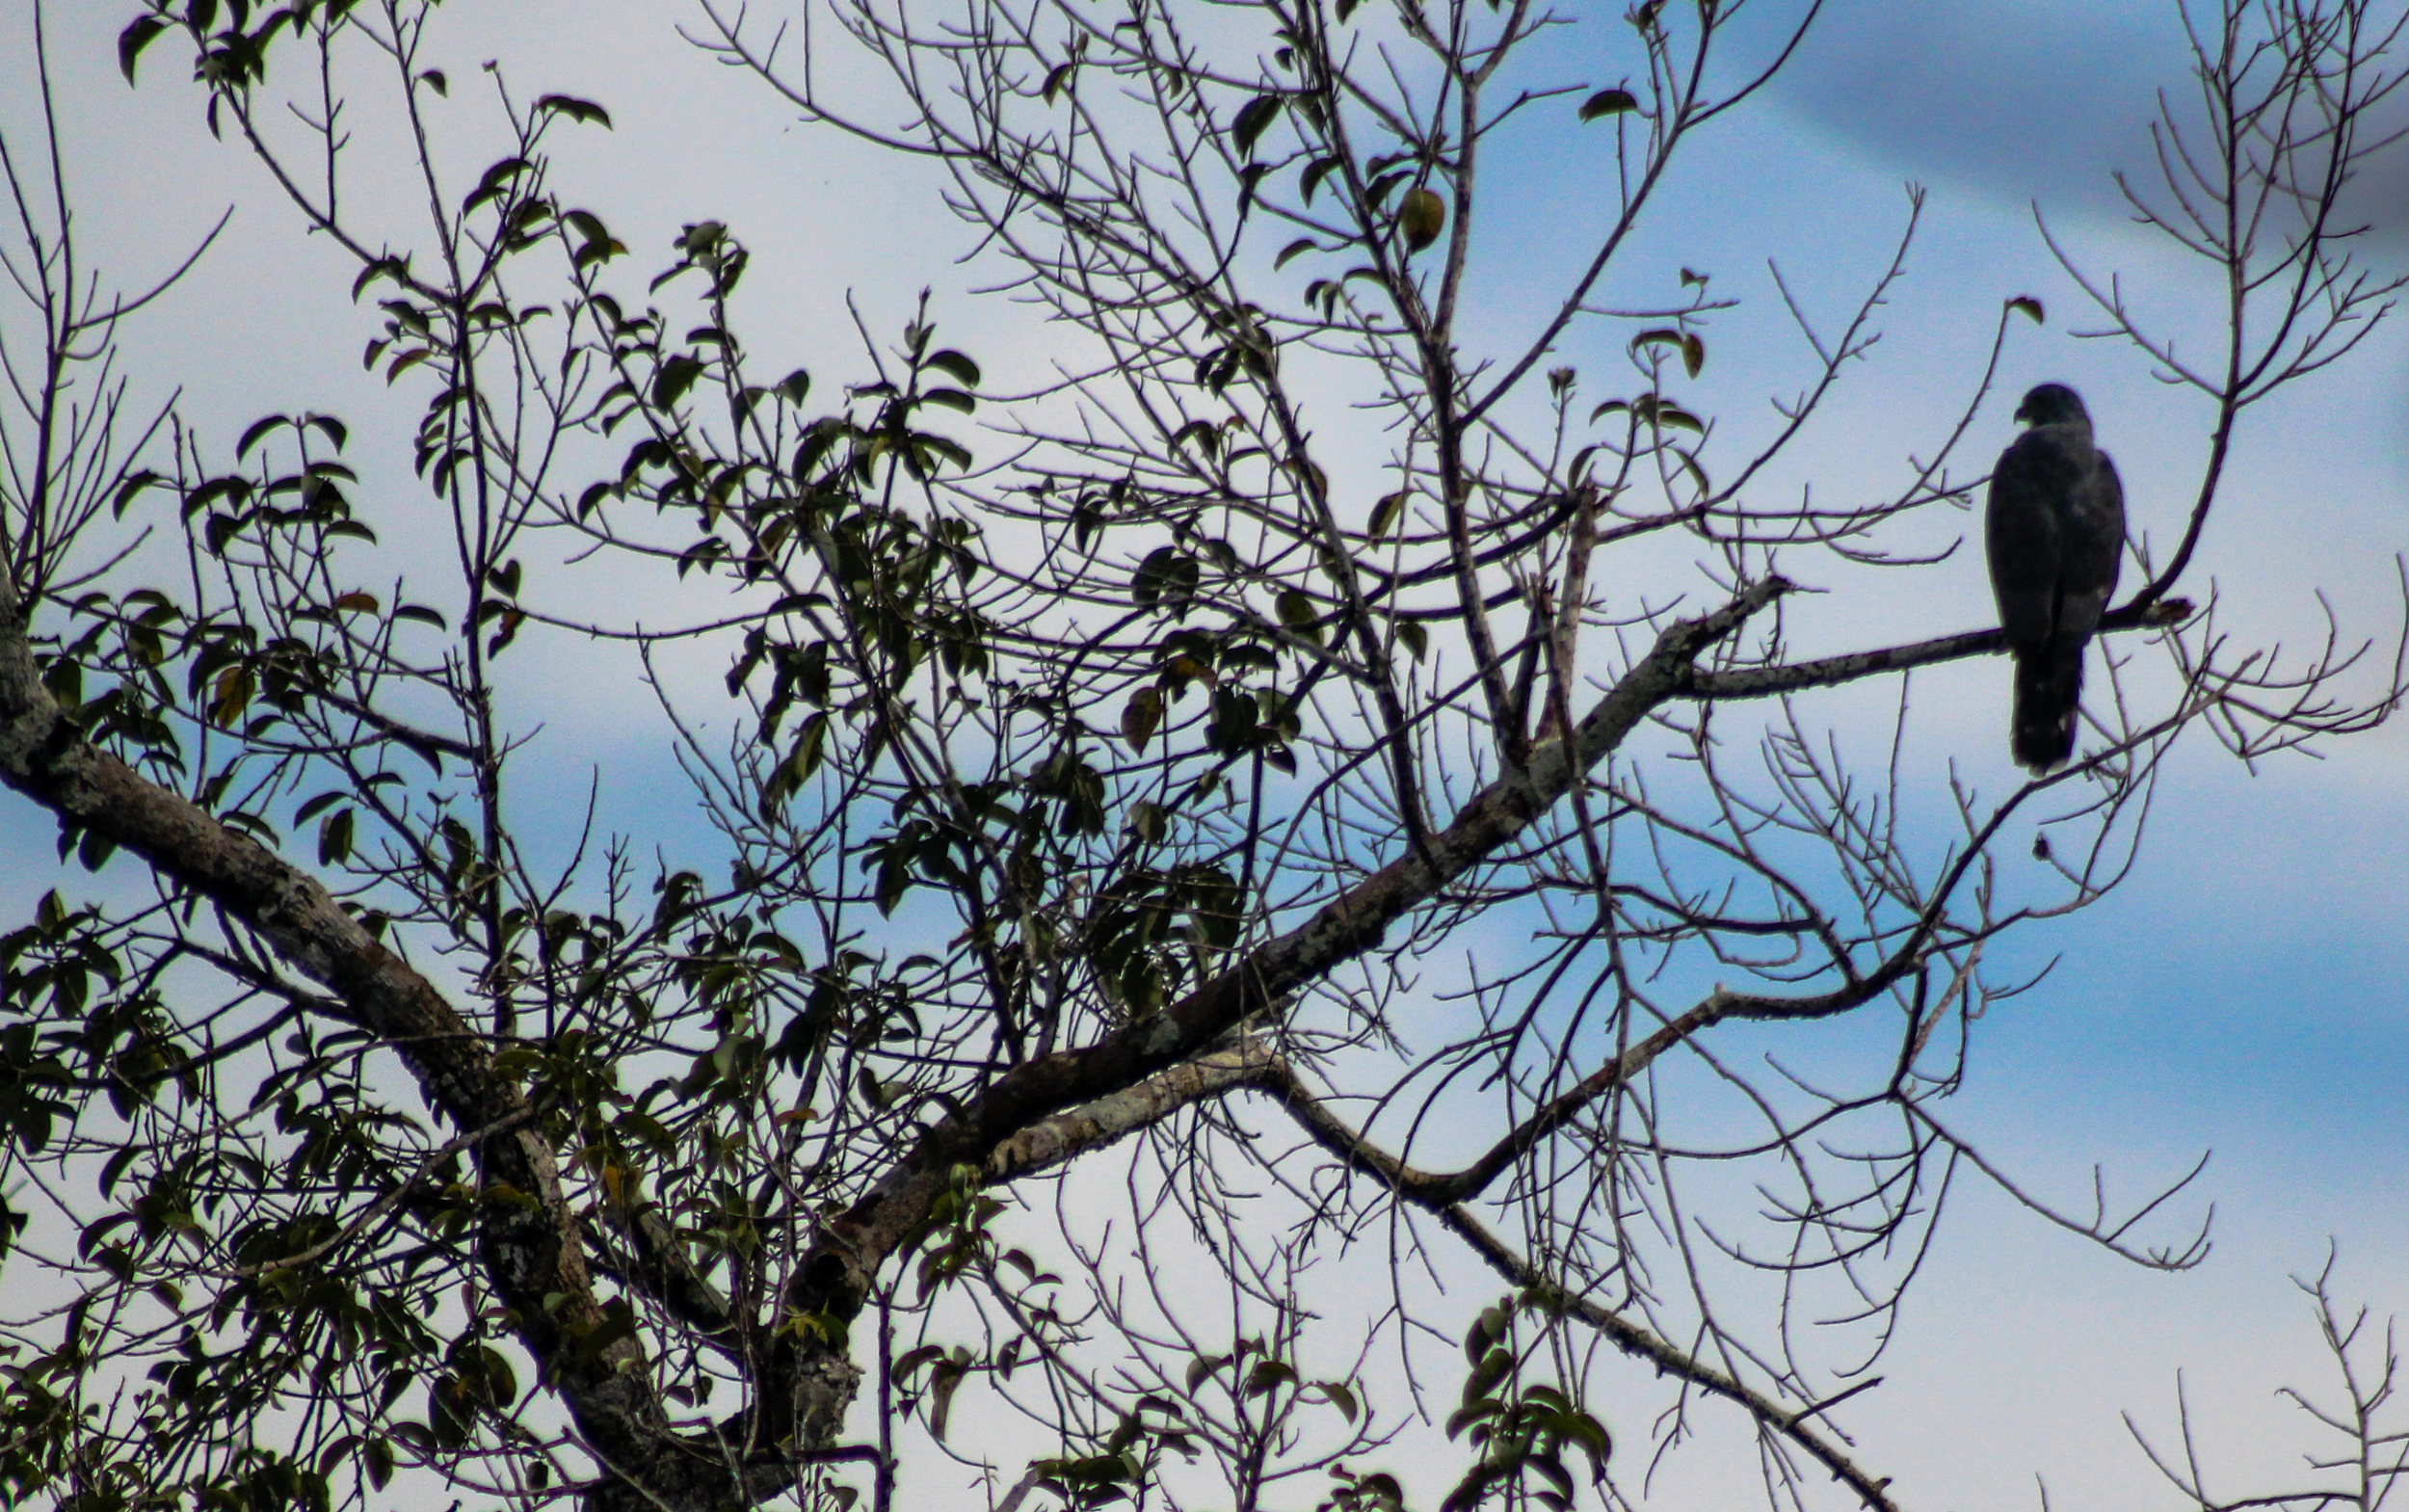 A grey-headed kite waits for prey high in the forest canopy